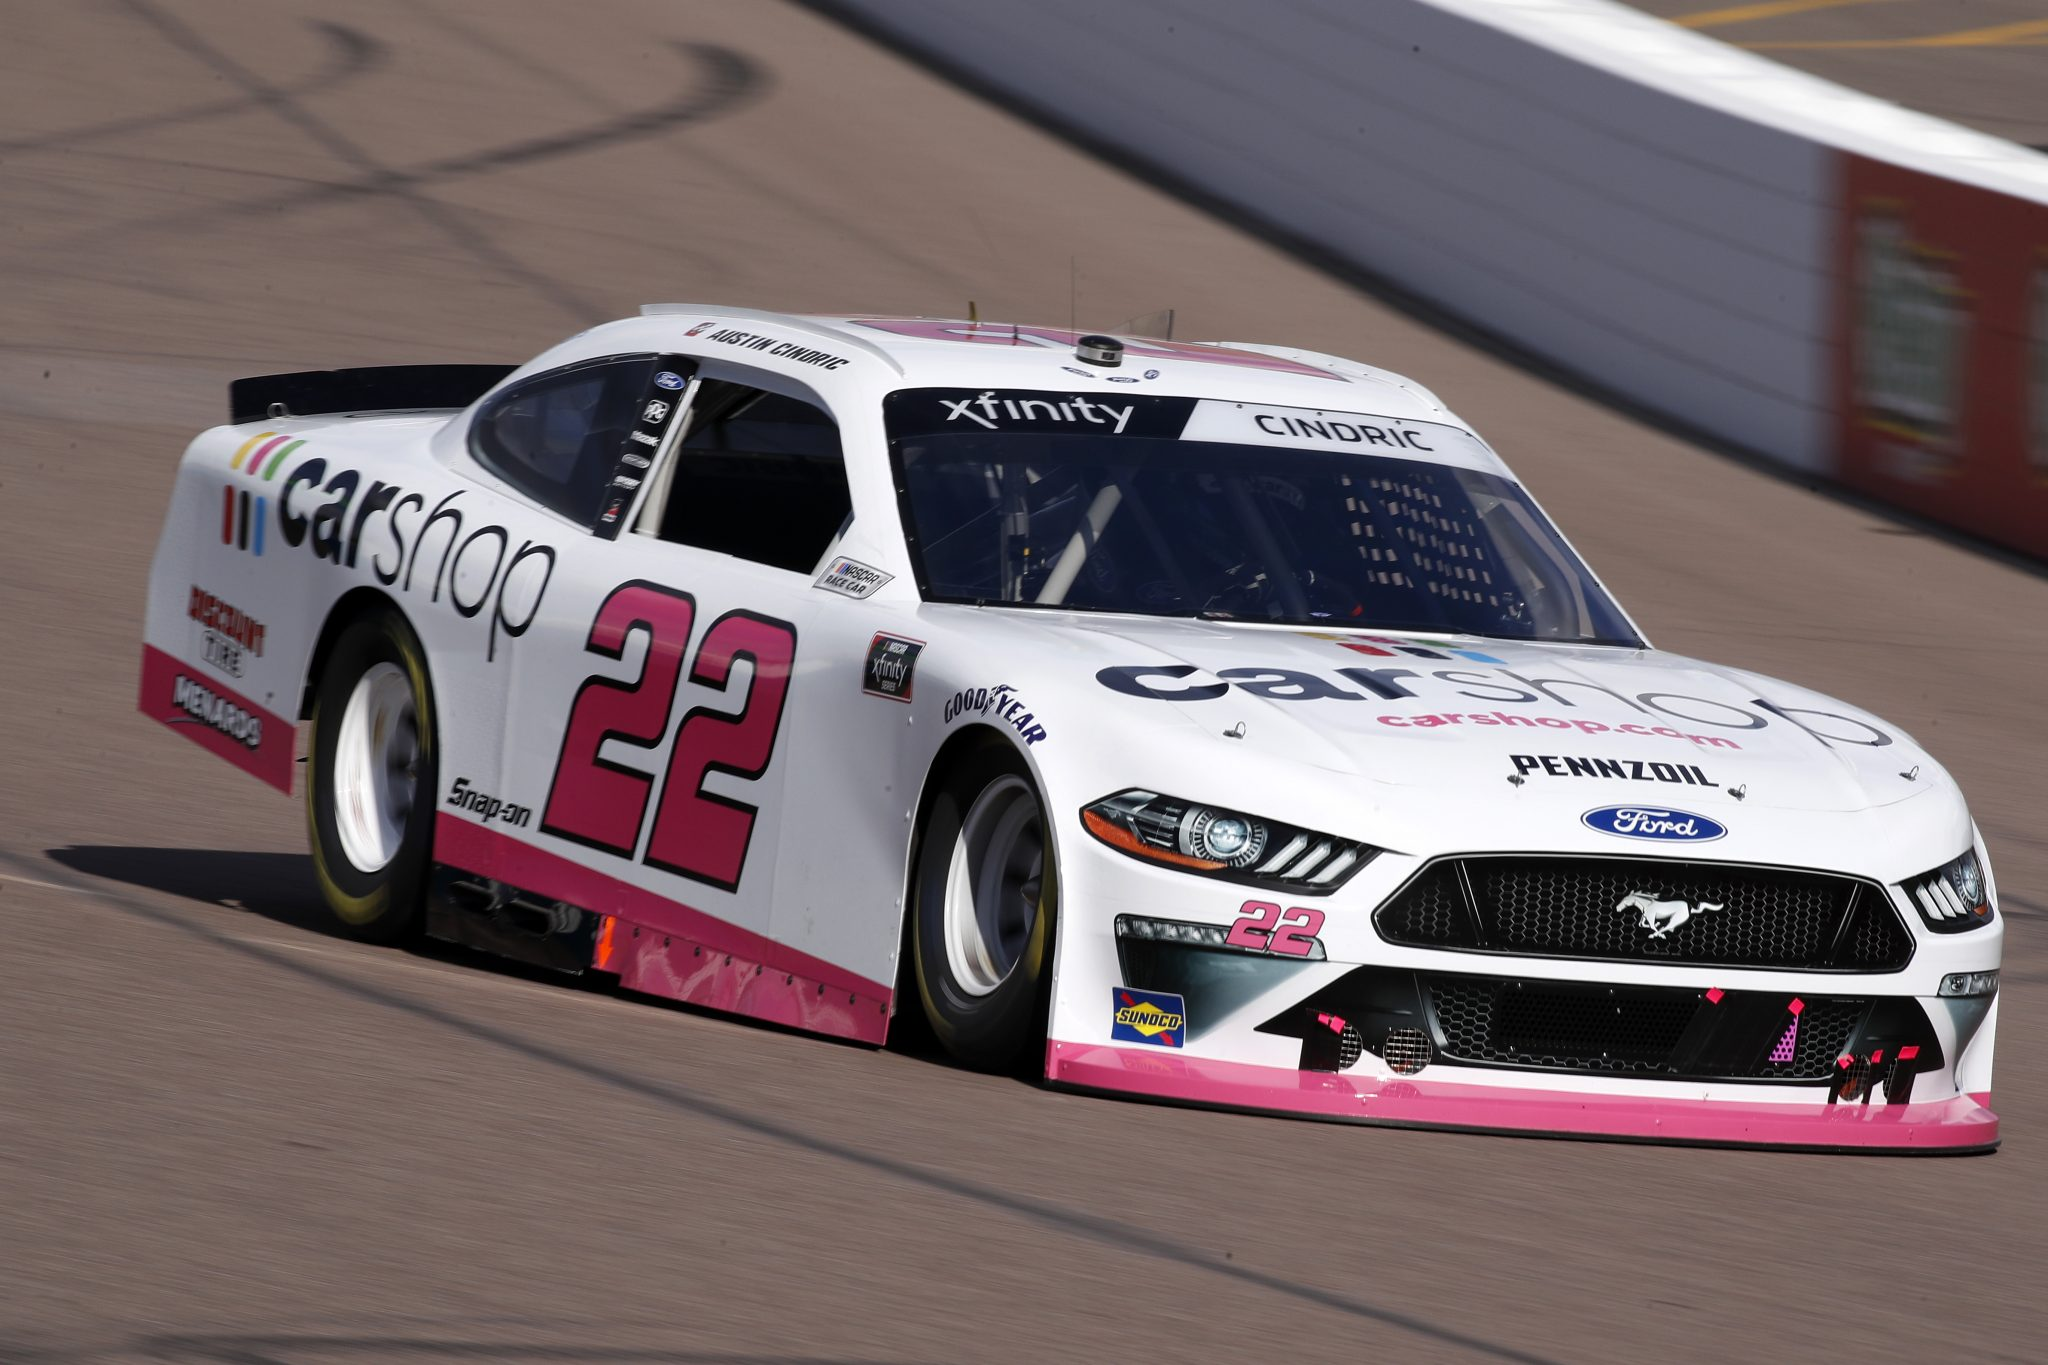 AVONDALE, ARIZONA - MARCH 13: Austin Cindric, driver of the #22 Car Shop Ford, drives during the NASCAR Xfinity Series Call 811 Before You Dig 200 presented by Arizona 811 at Phoenix Raceway on March 13, 2021 in Avondale, Arizona. (Photo by Christian Petersen/Getty Images) | Getty Images